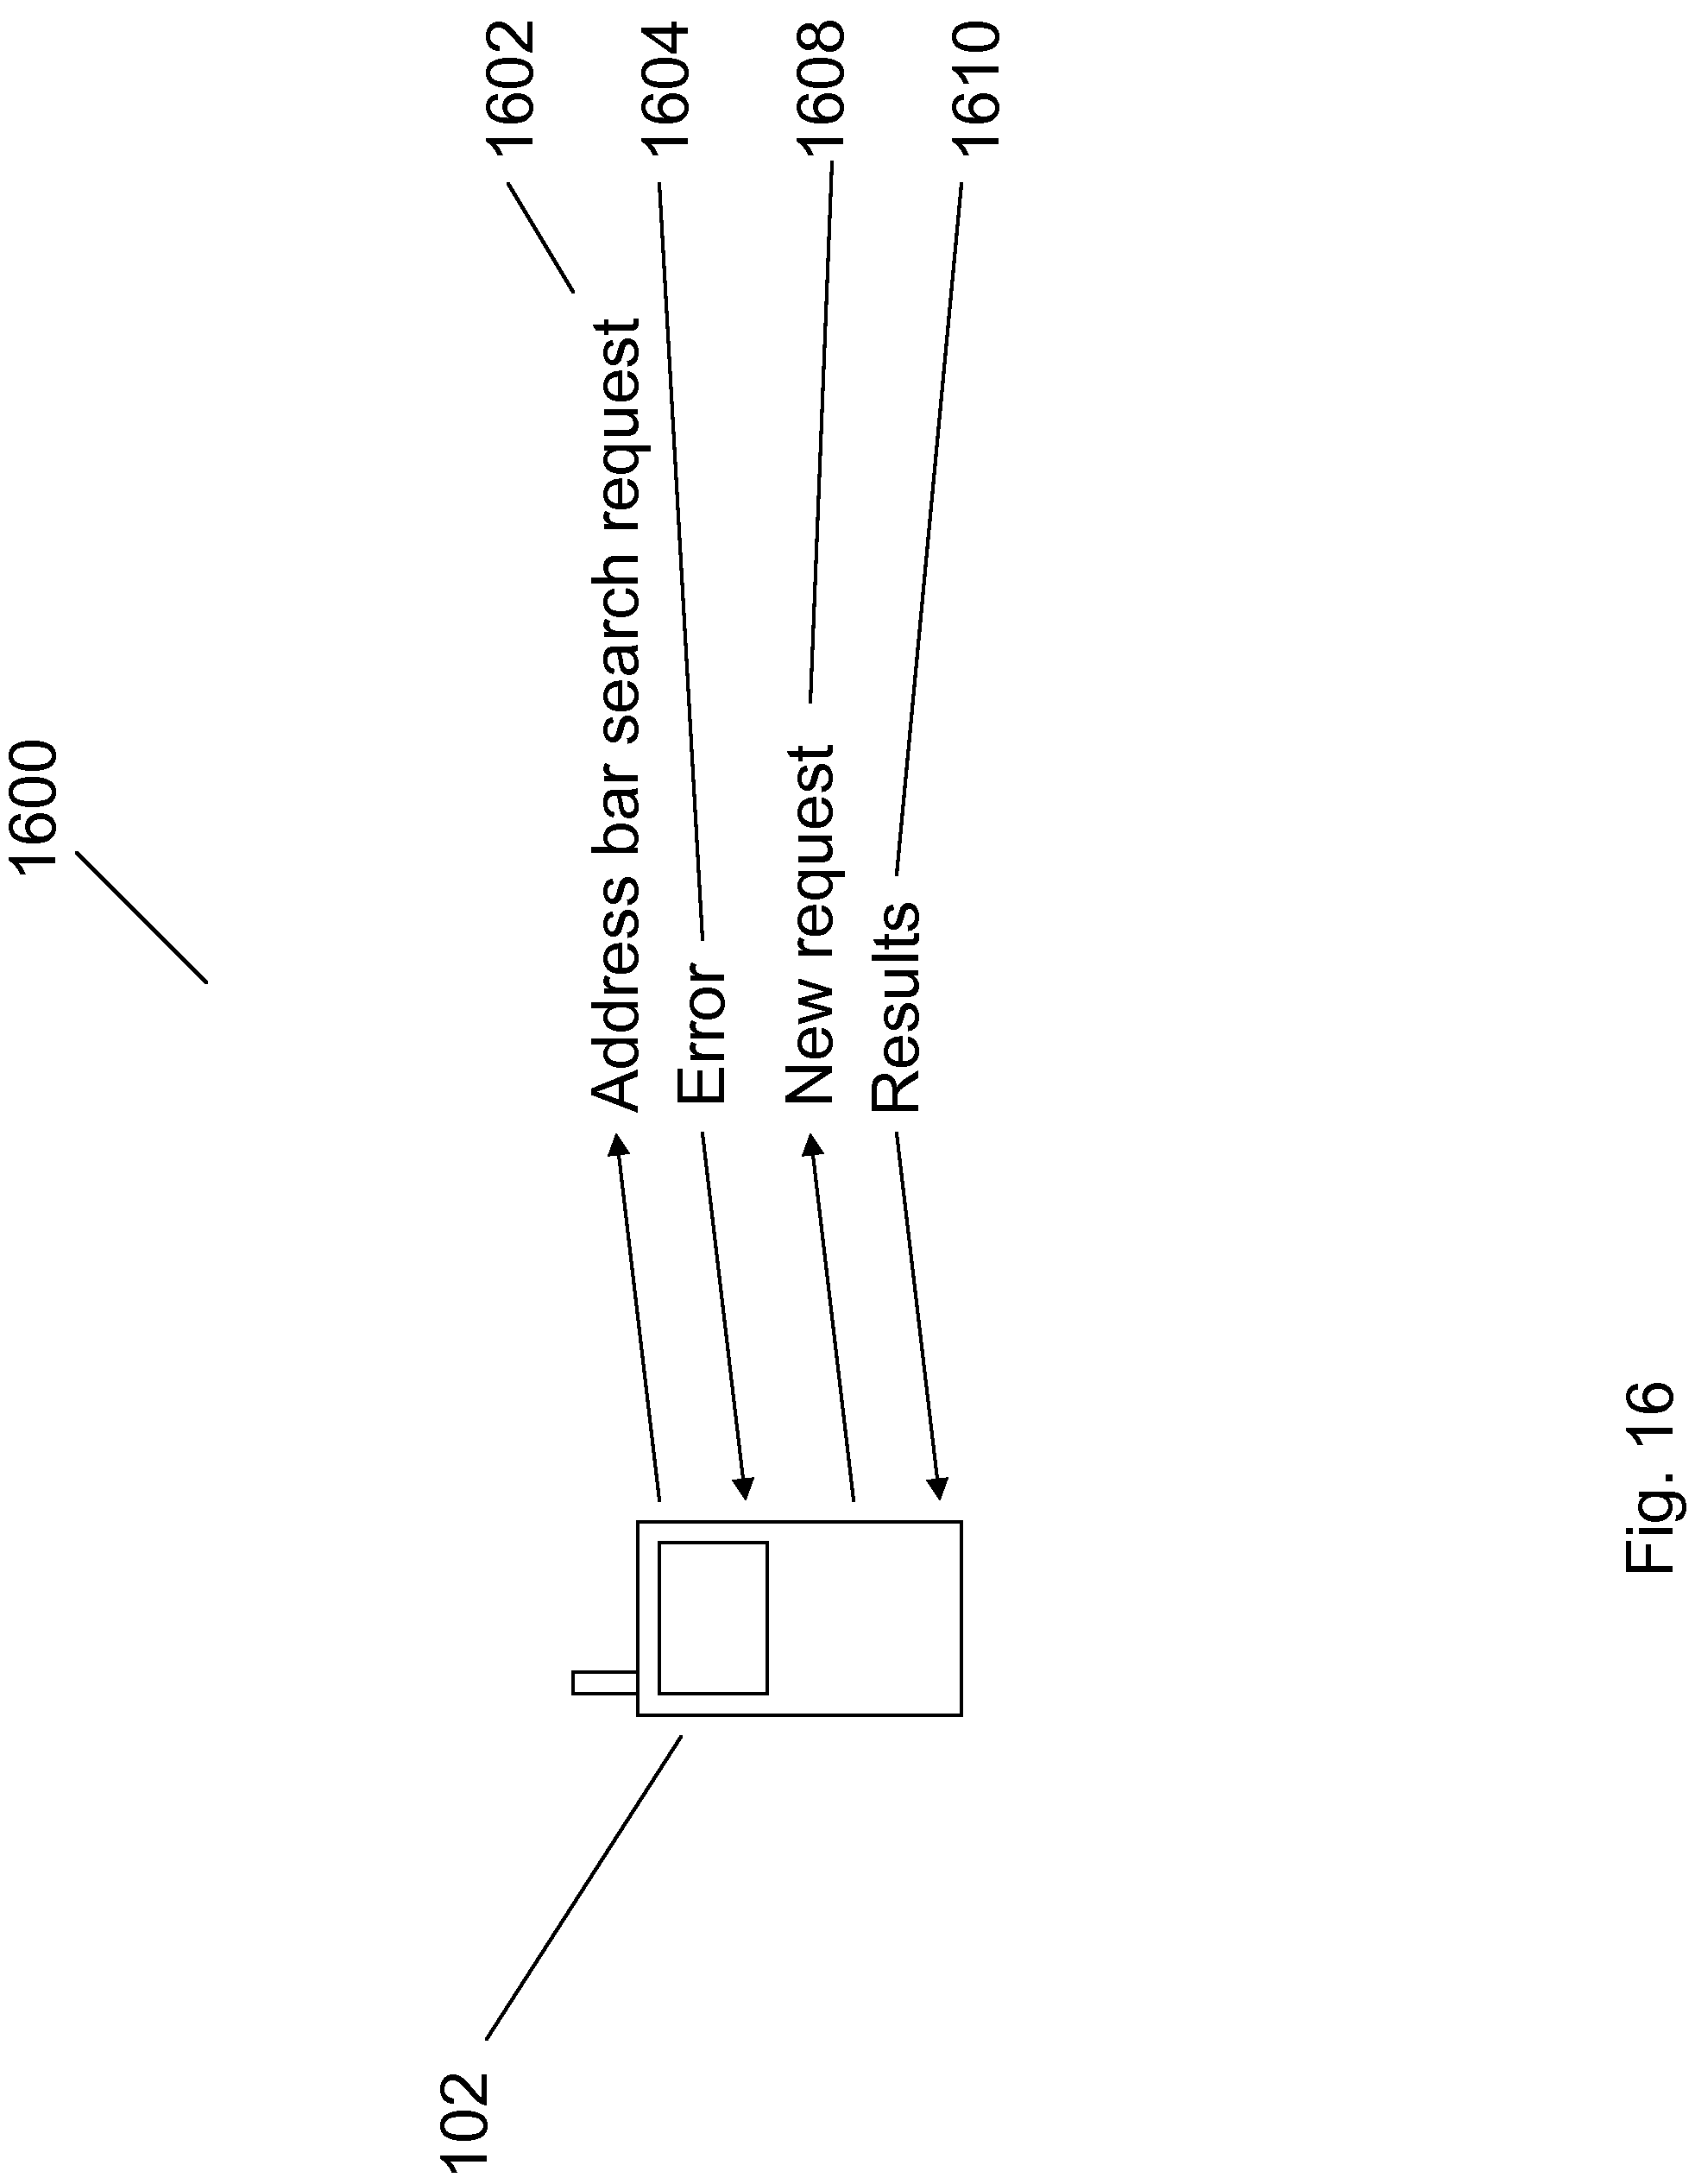 Patent Us 7548915 B2 Or Photo Of Circuit Board Skinned Human Close Up And Binary Code 0 Petitions